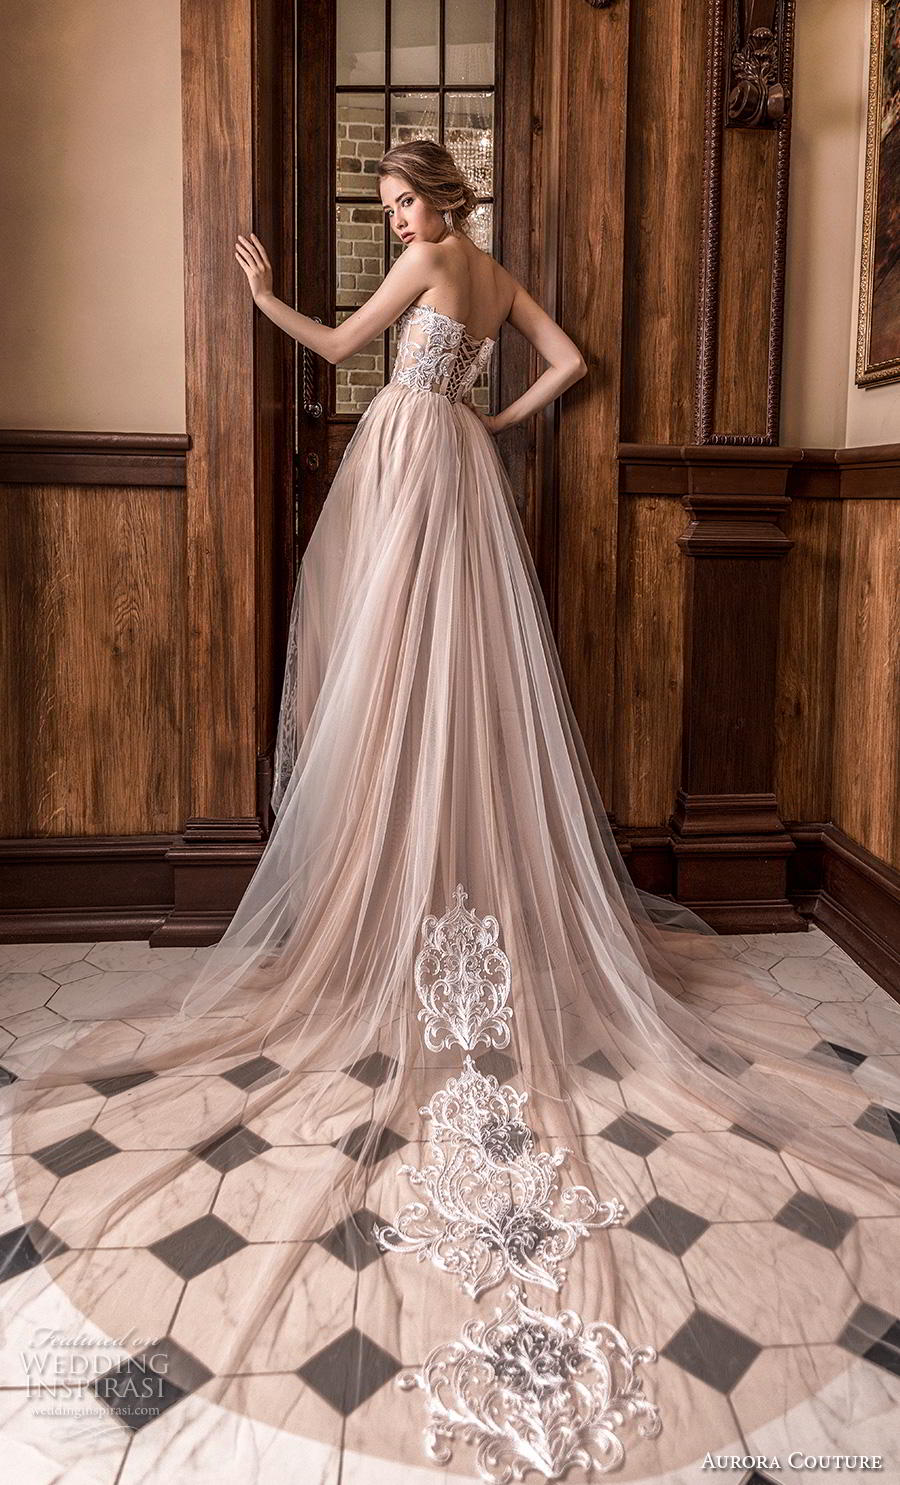 aurora couture 2019 bridal strapless deep plunging sweetheart neckline heavily embellished bodice romantic a  line wedding dress mid back chapel train (7) bv